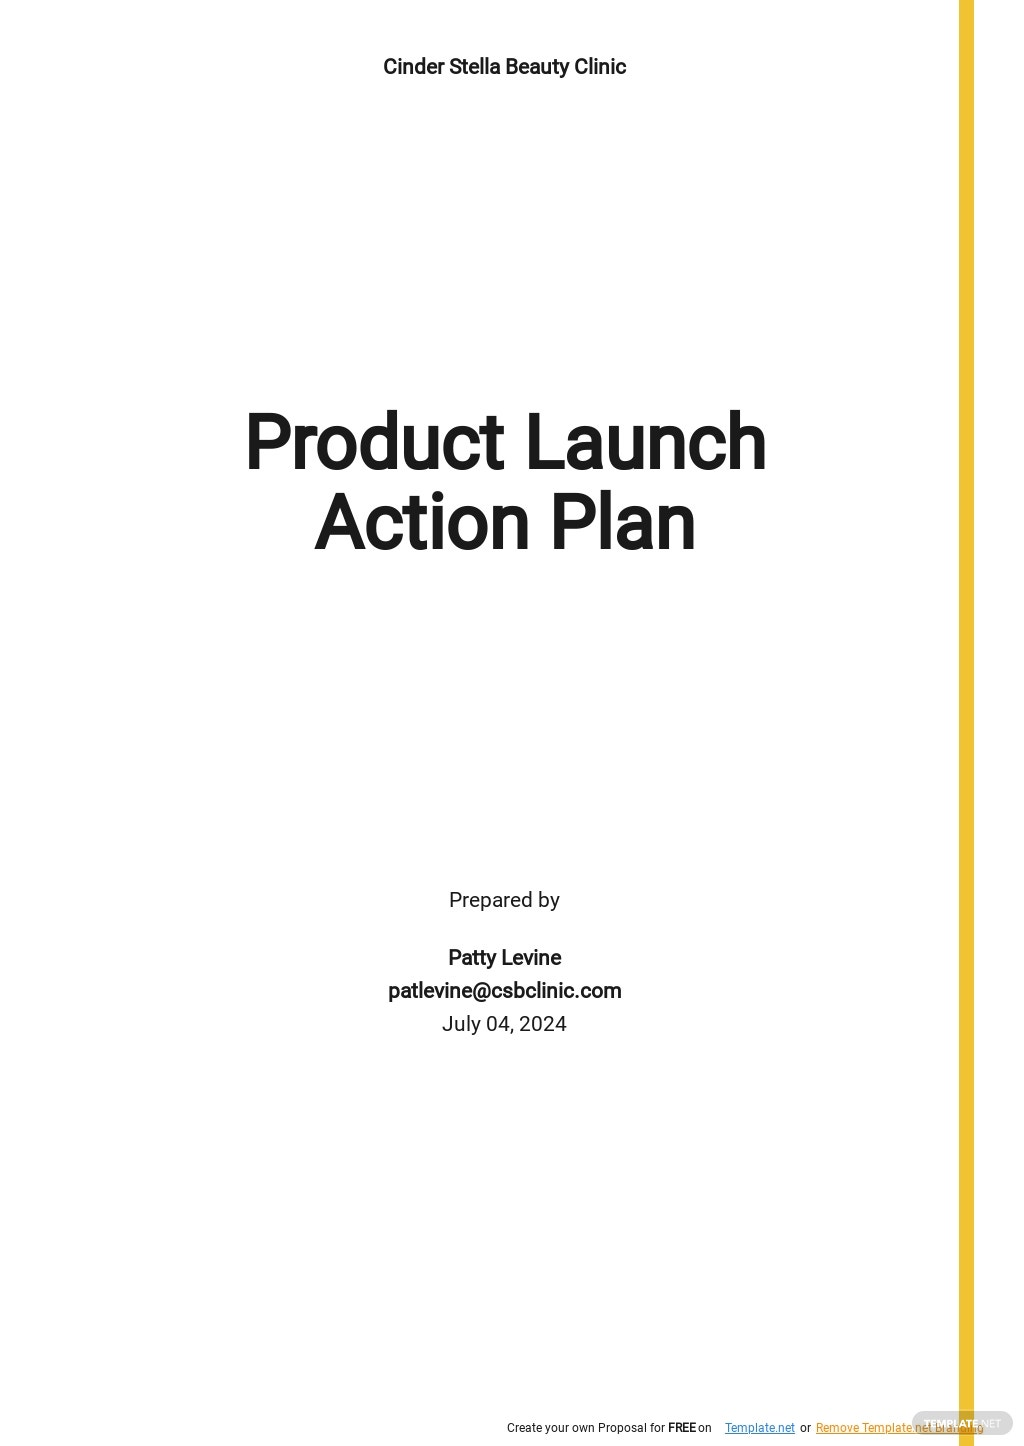 Product Launch Action Plan Template.jpe